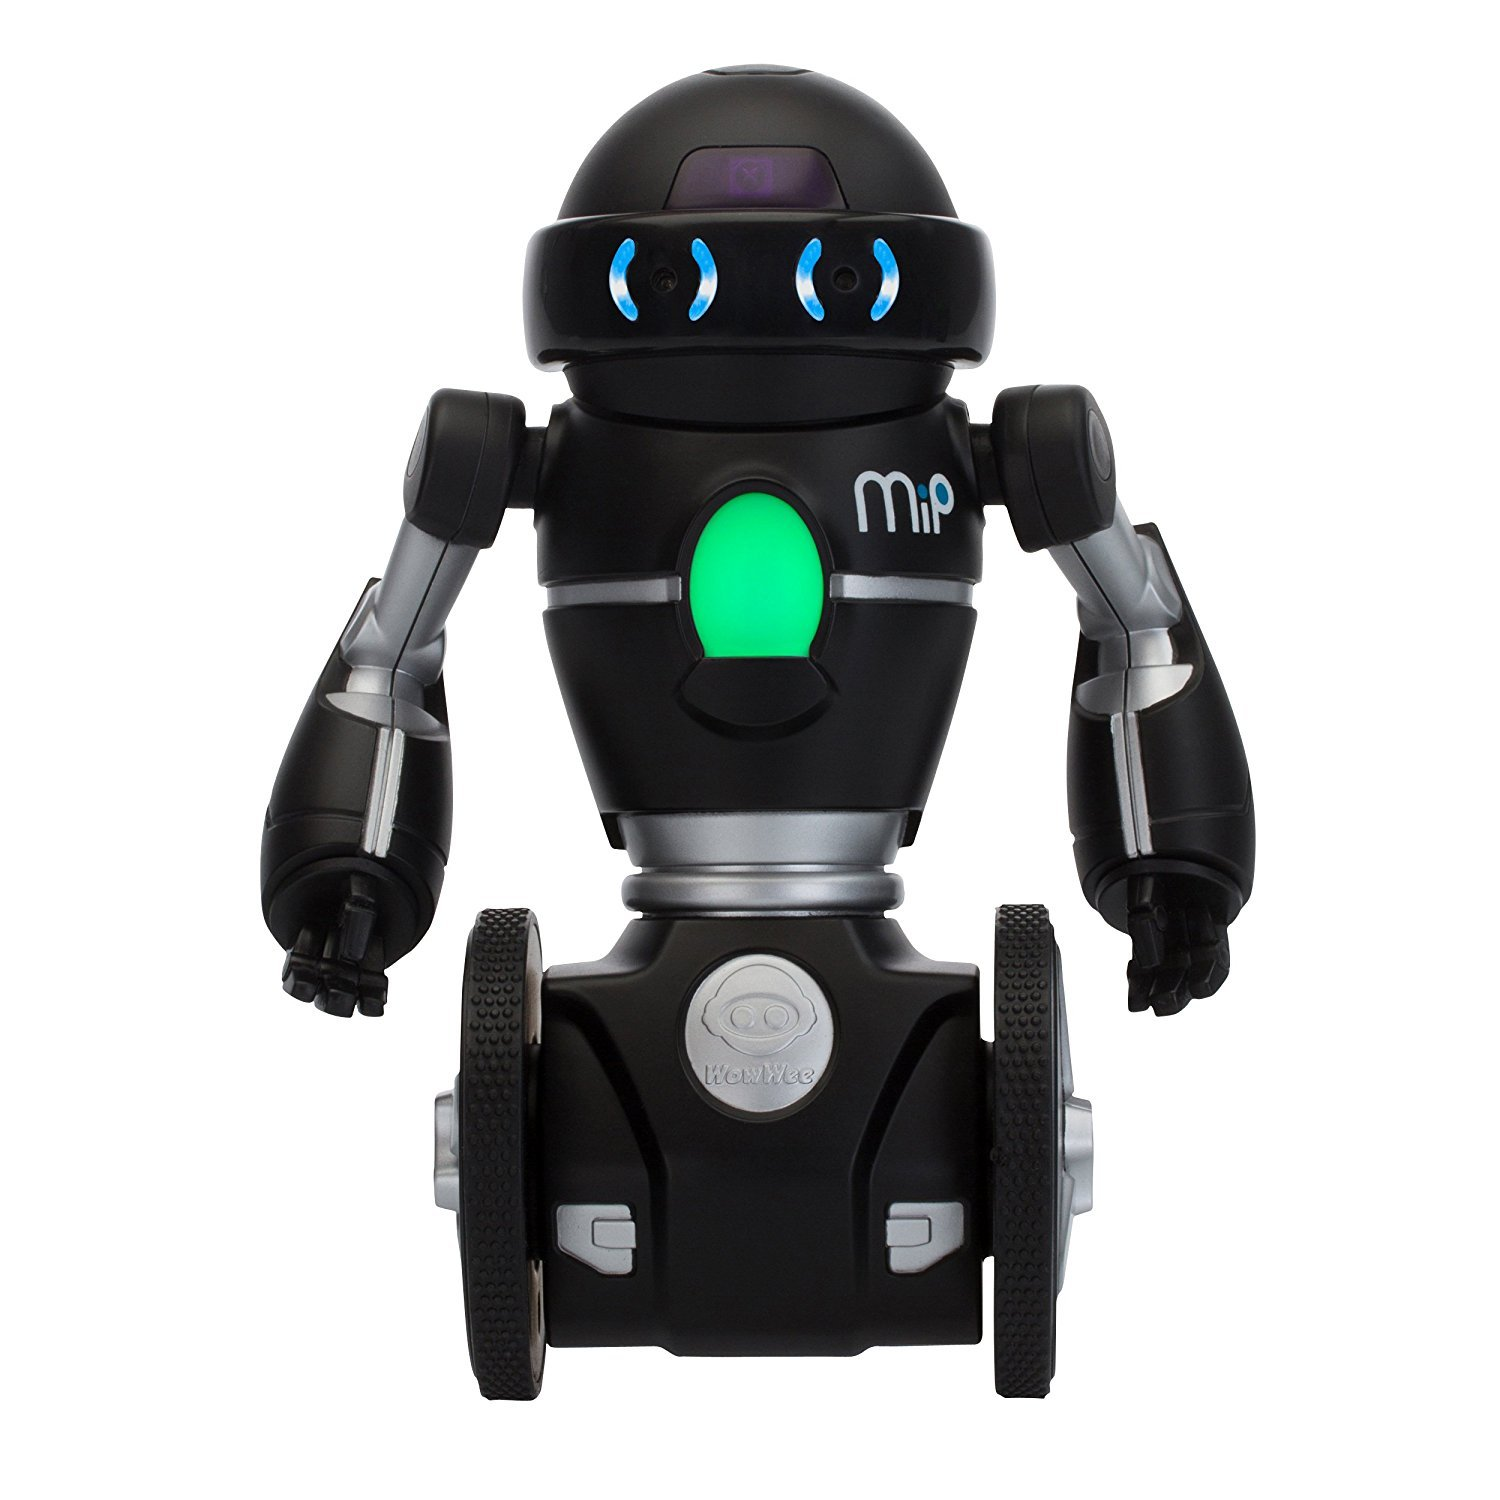 MiP the Toy Robot - Black